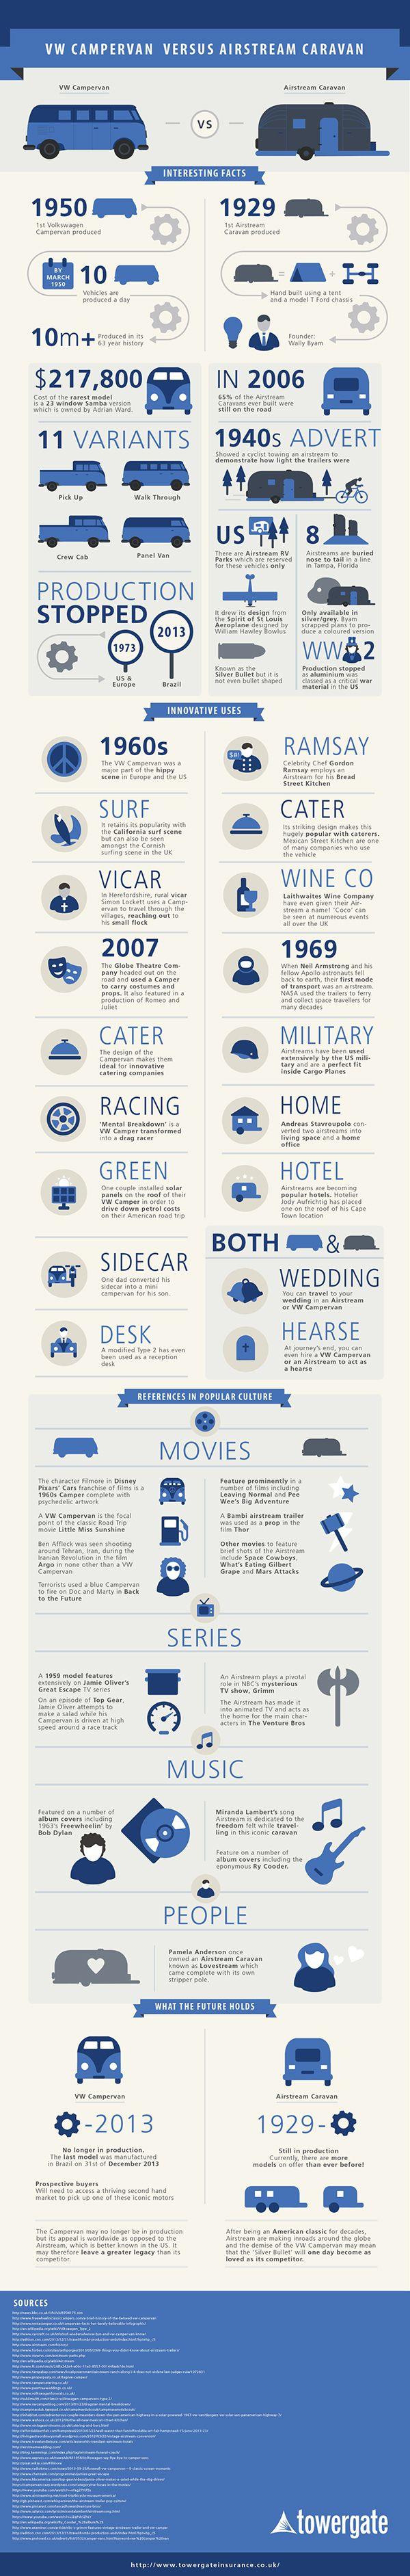 [Infographic] VW Campervan vs Airstream Caravan